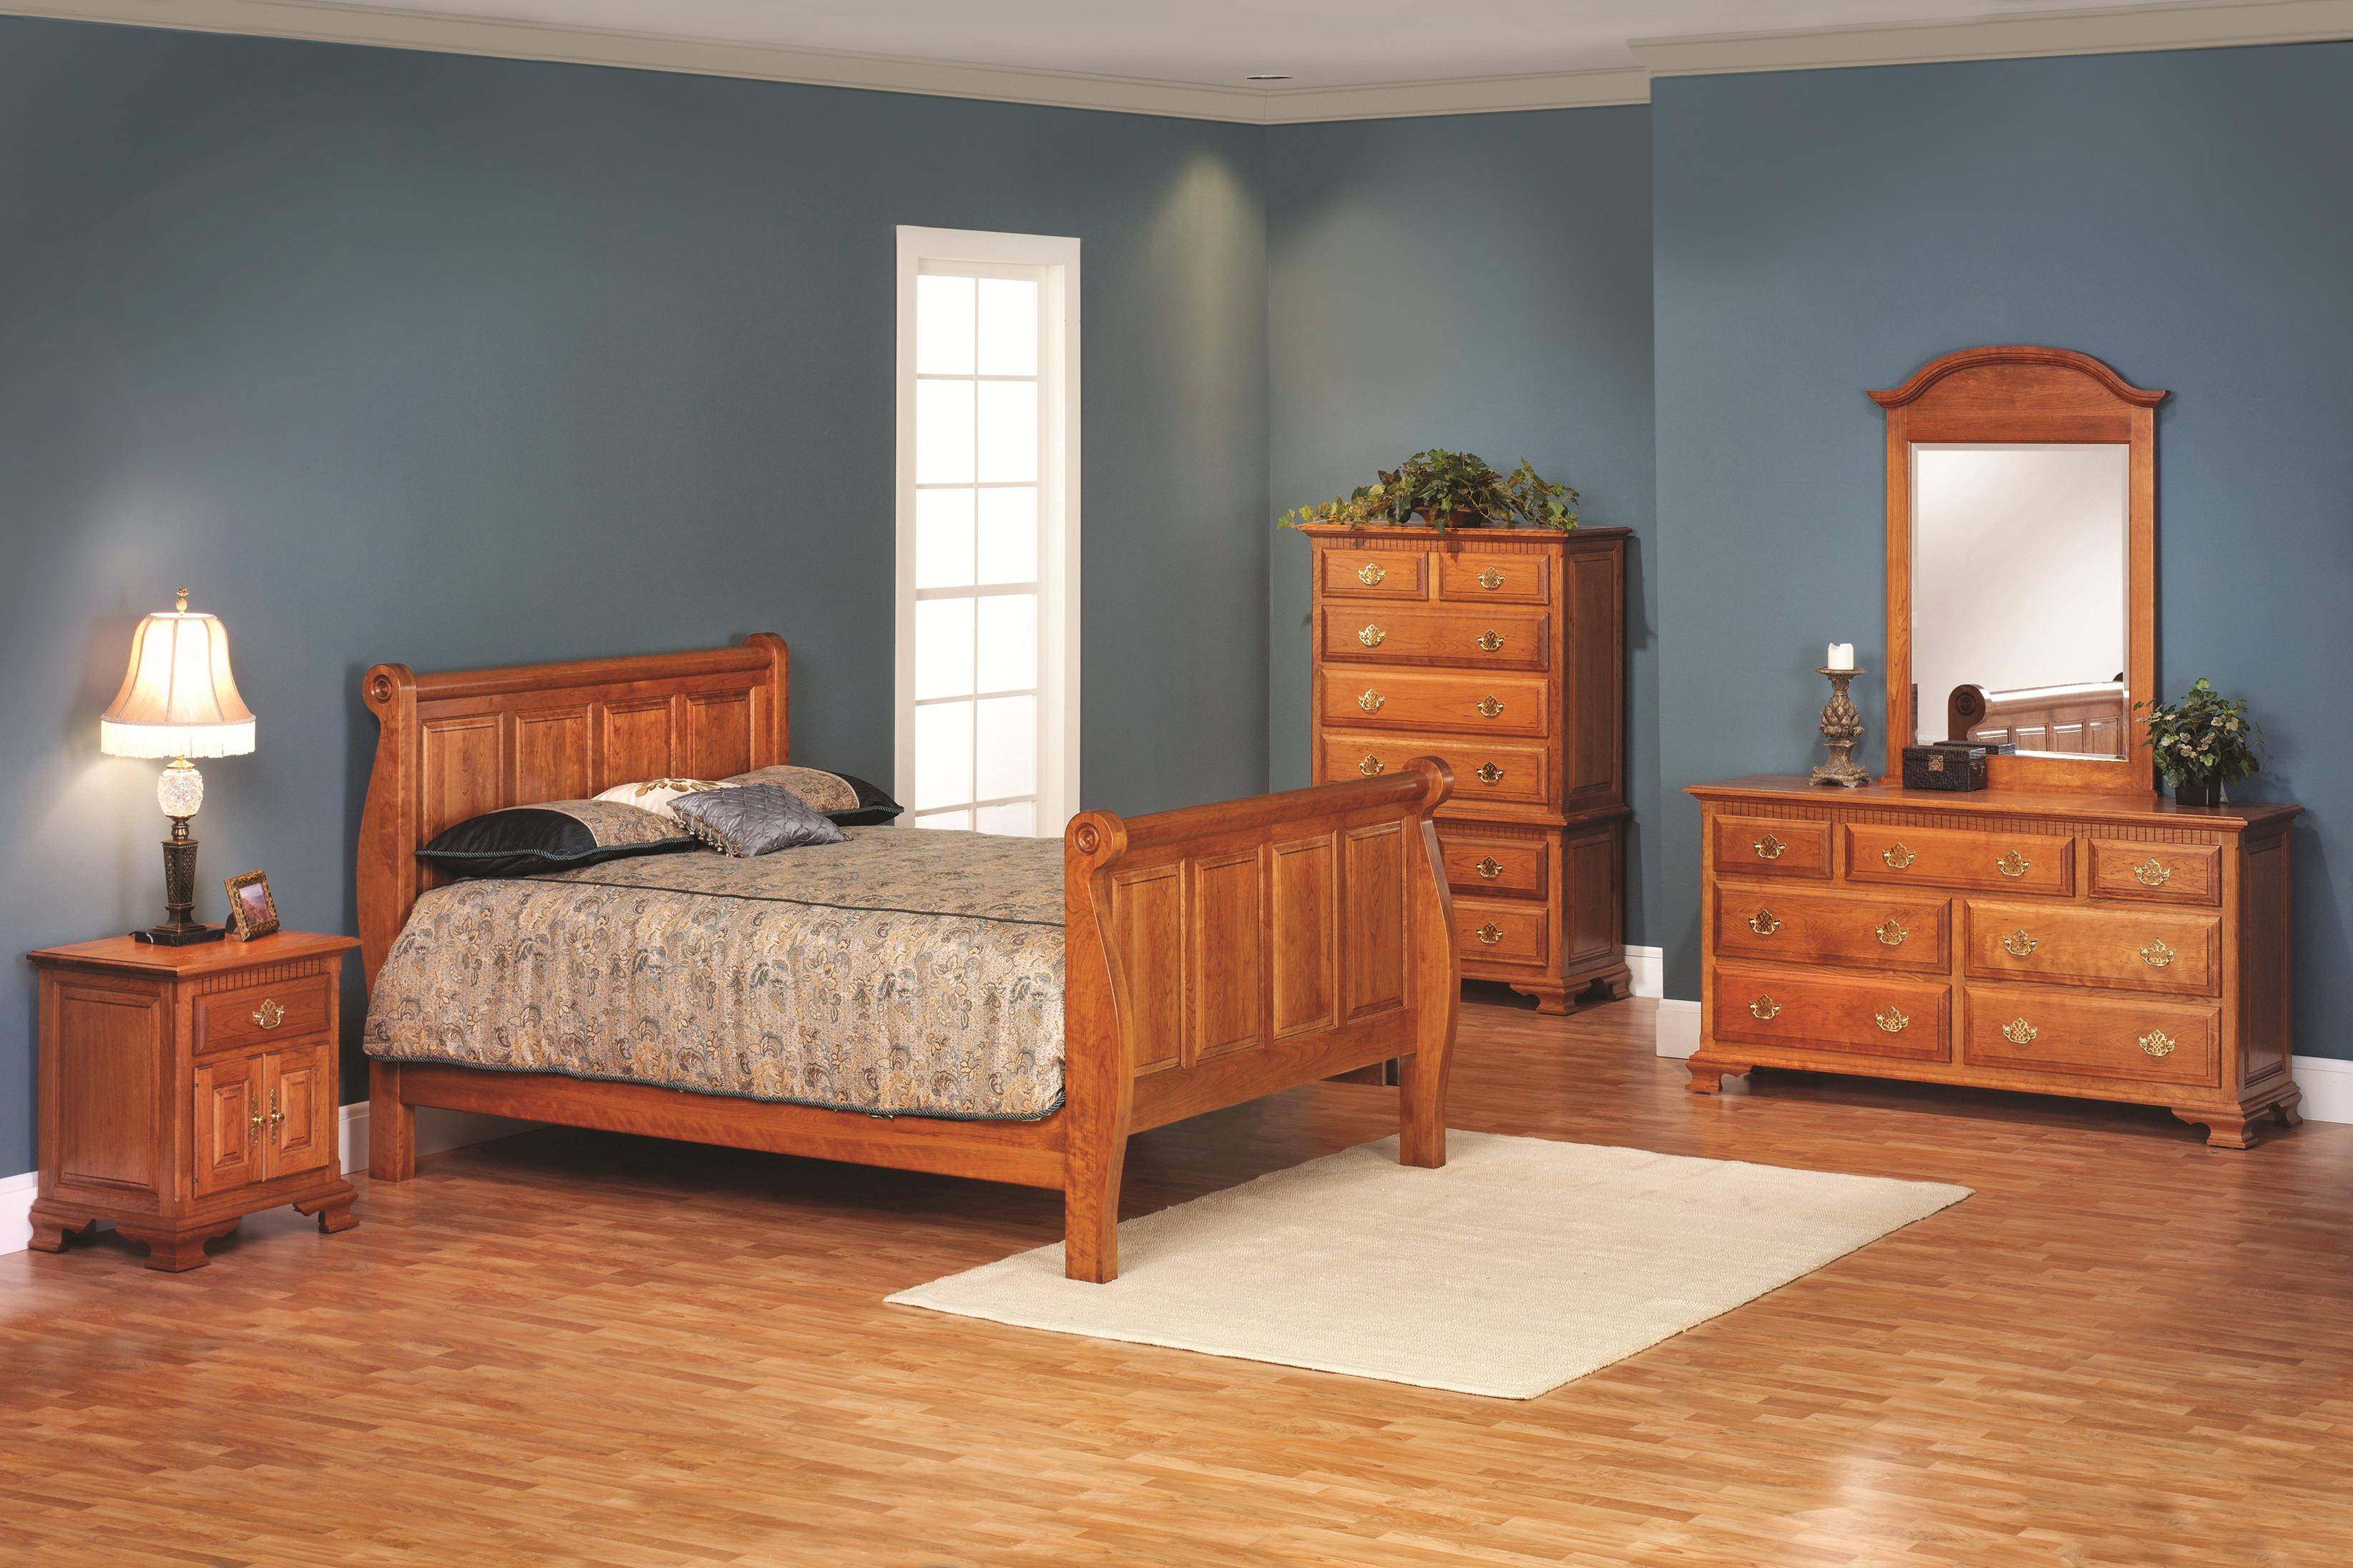 Victorias Tradition King Sleigh Bedroom Group by Millcraft at Saugerties Furniture Mart